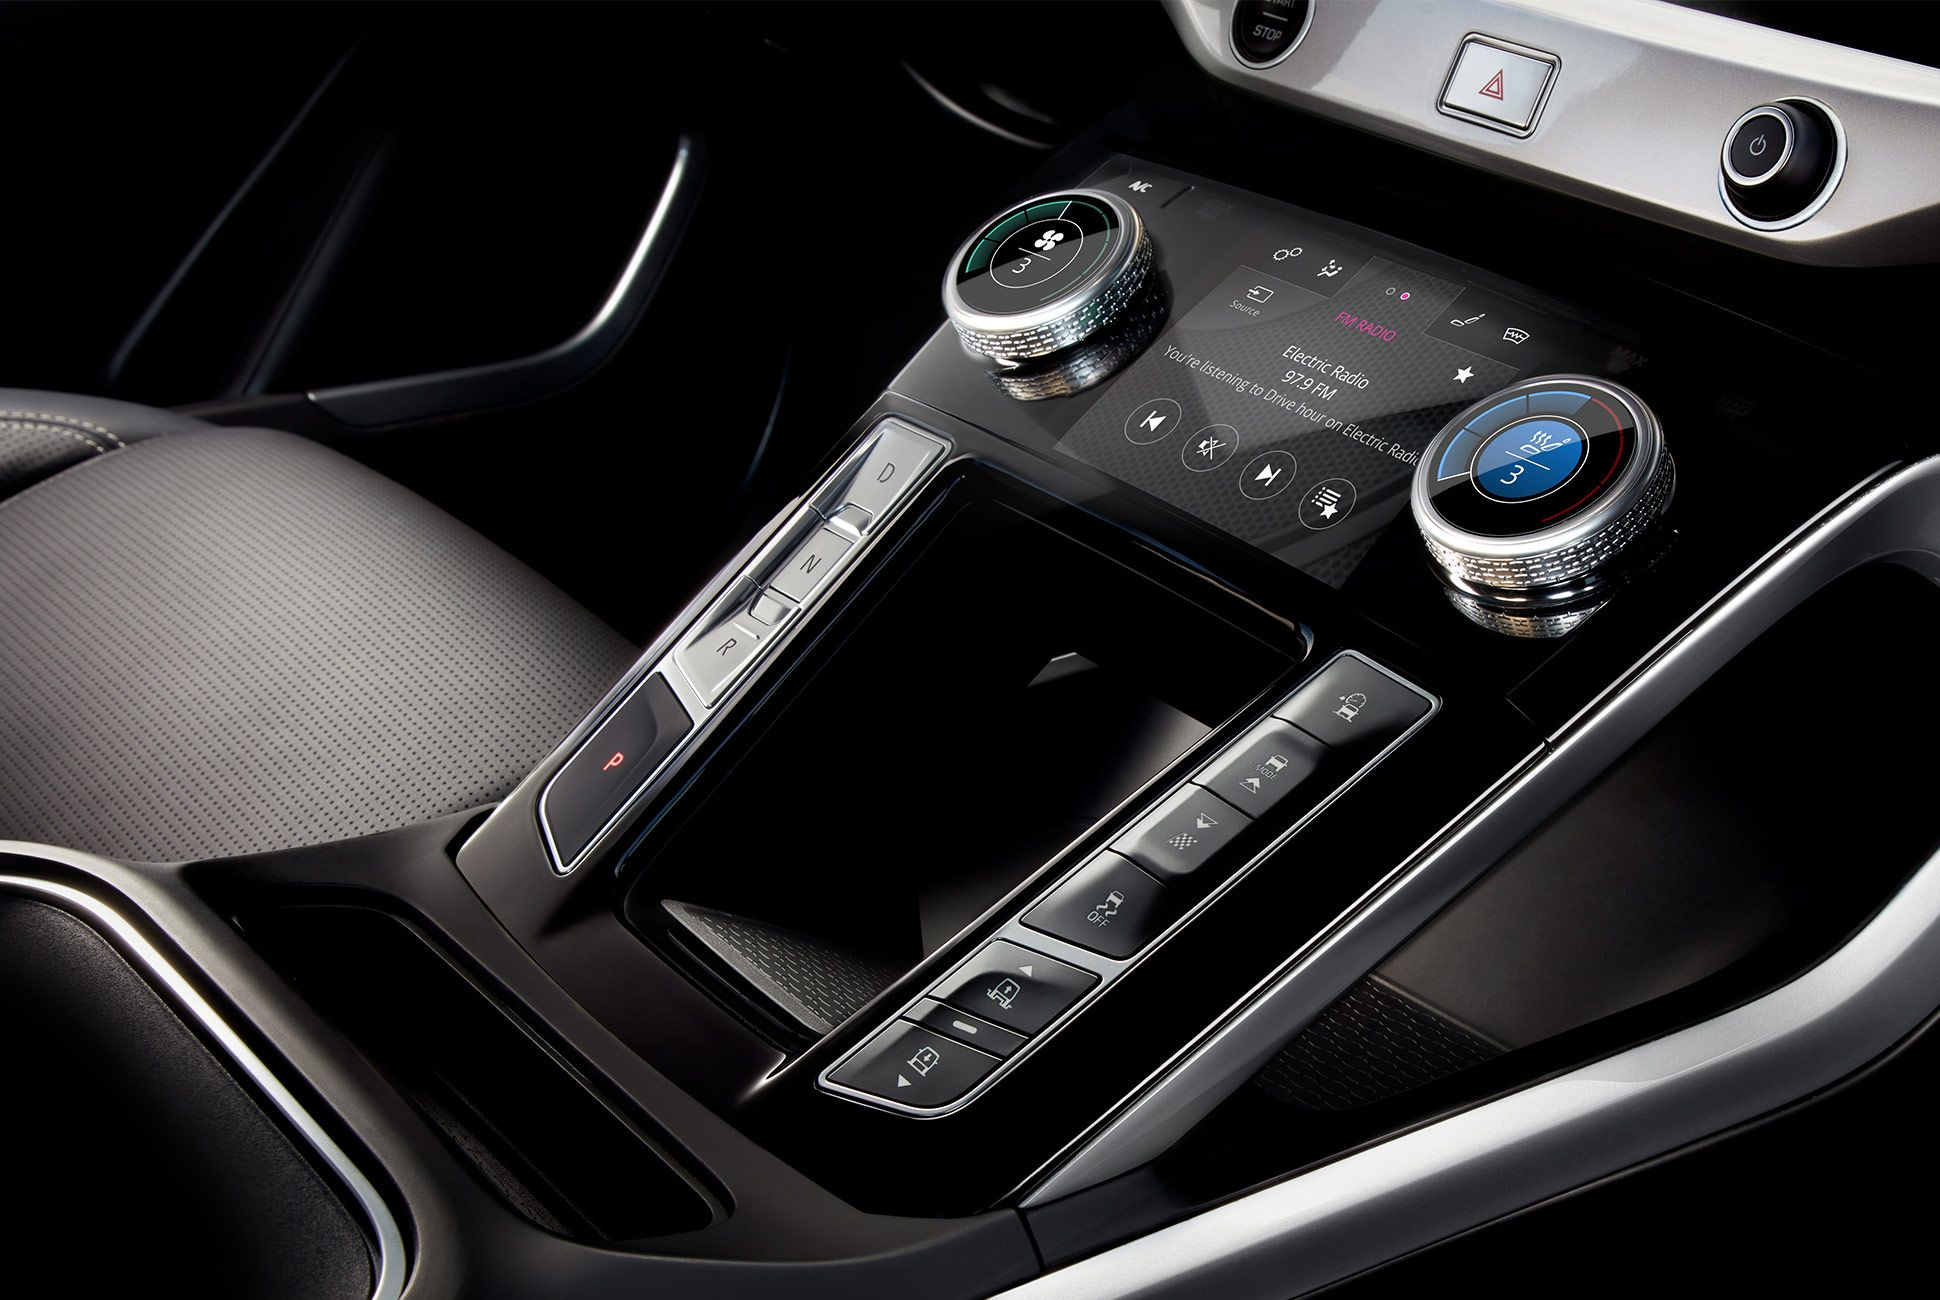 The 7 Best Car Infotainment Systems You Can Buy • Gear Patrol